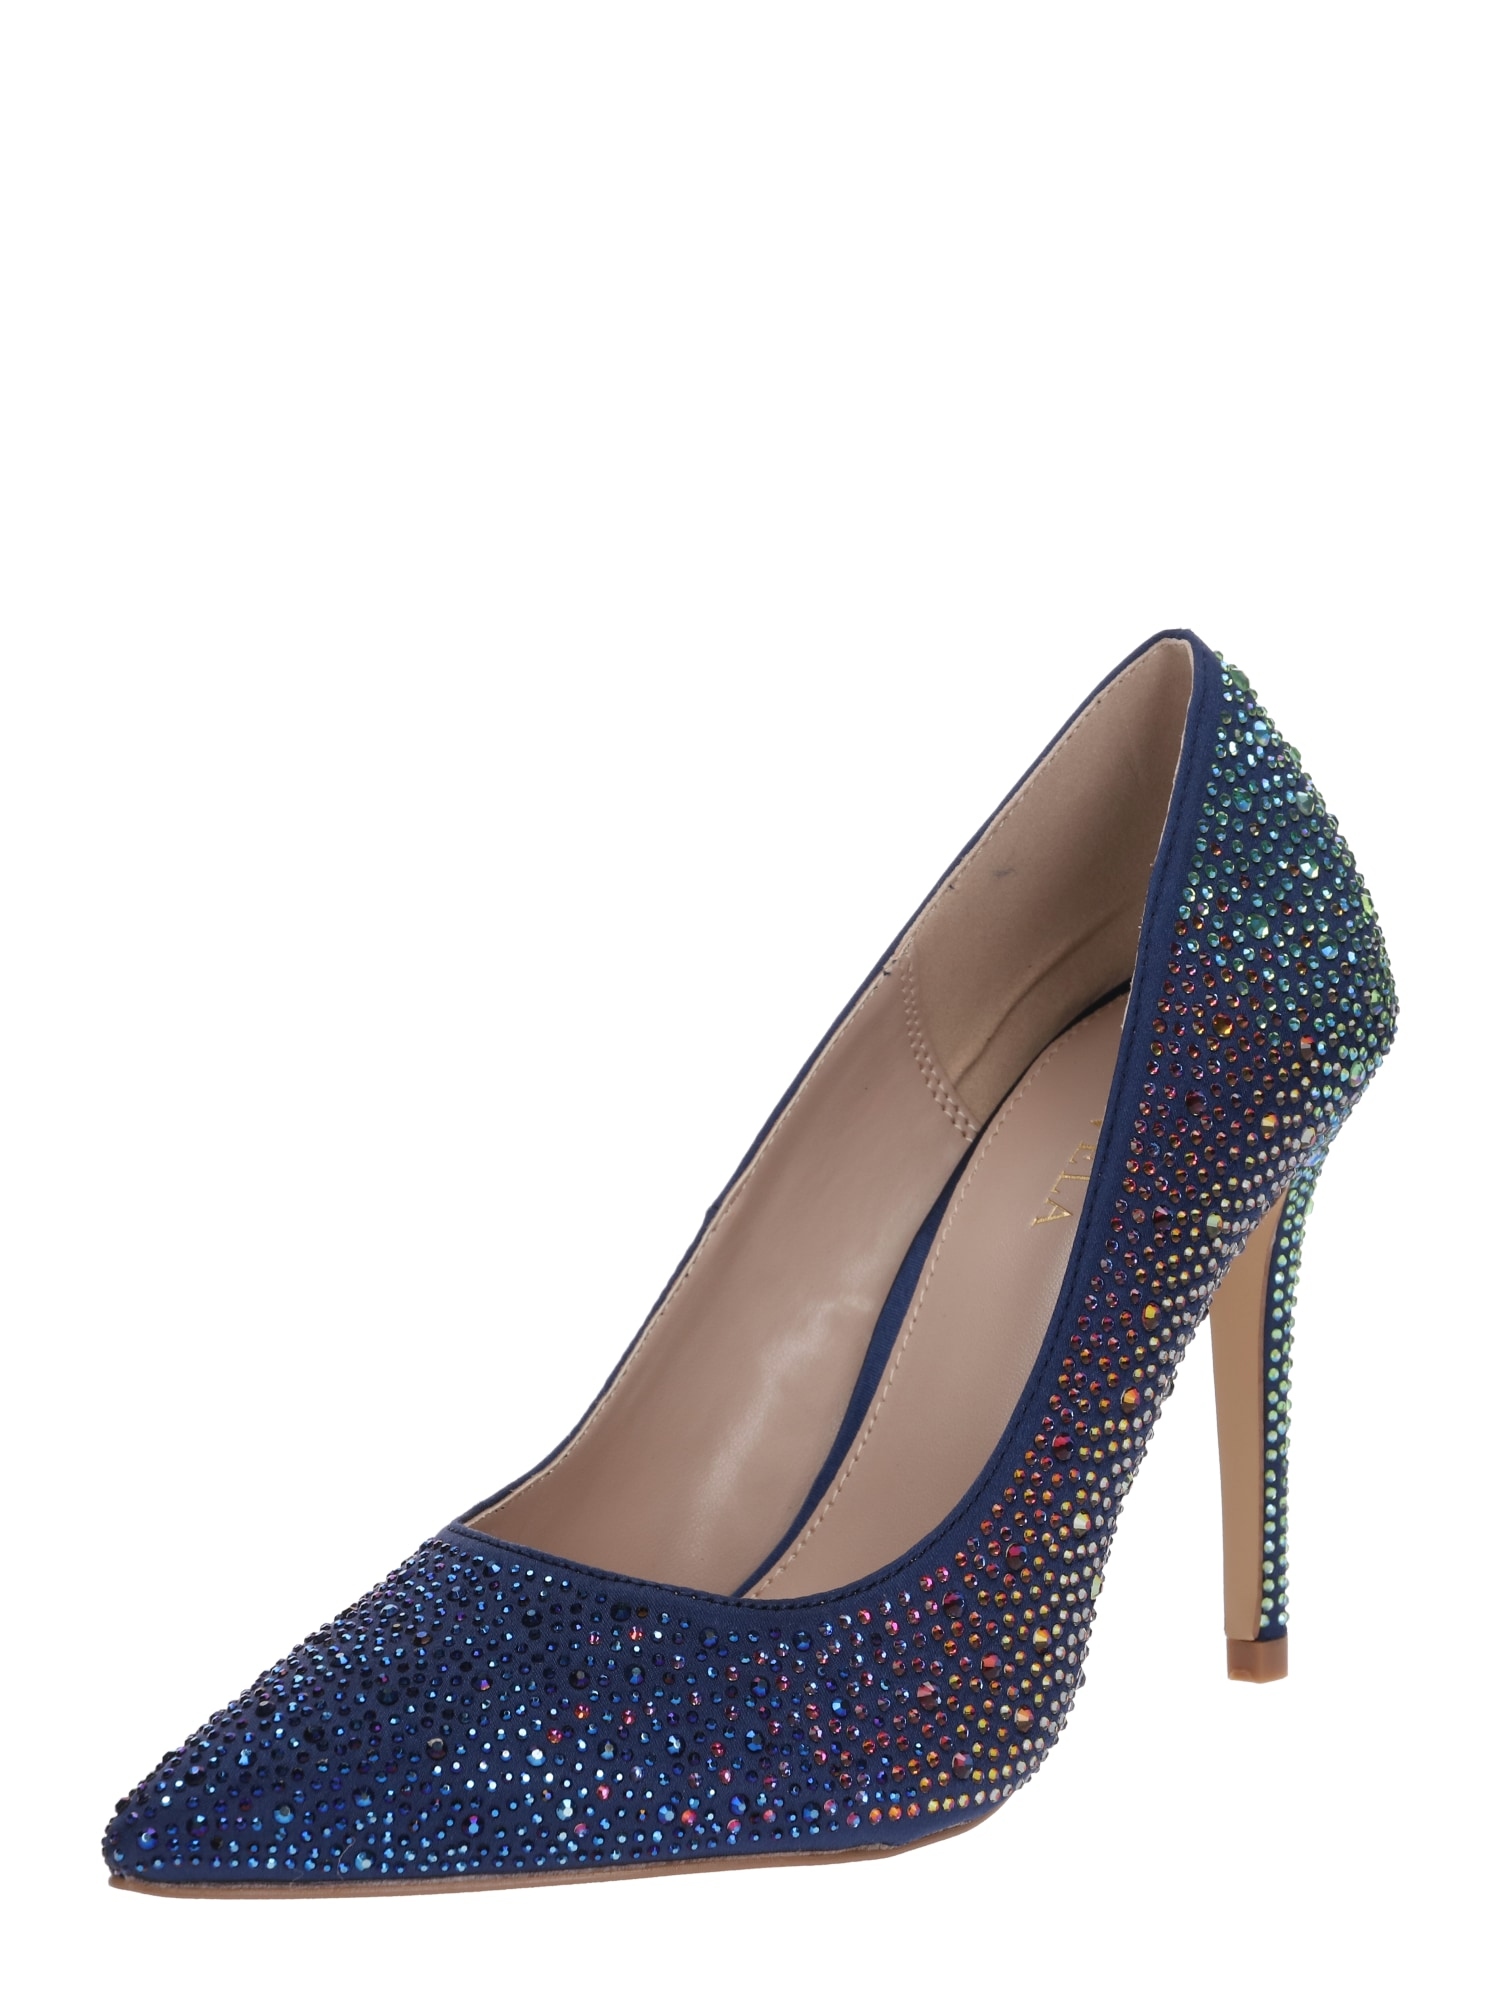 Pumps 'LOVEBIRD' | Schuhe > Pumps > Klassische Pumps | Carvela By Kurt Geiger